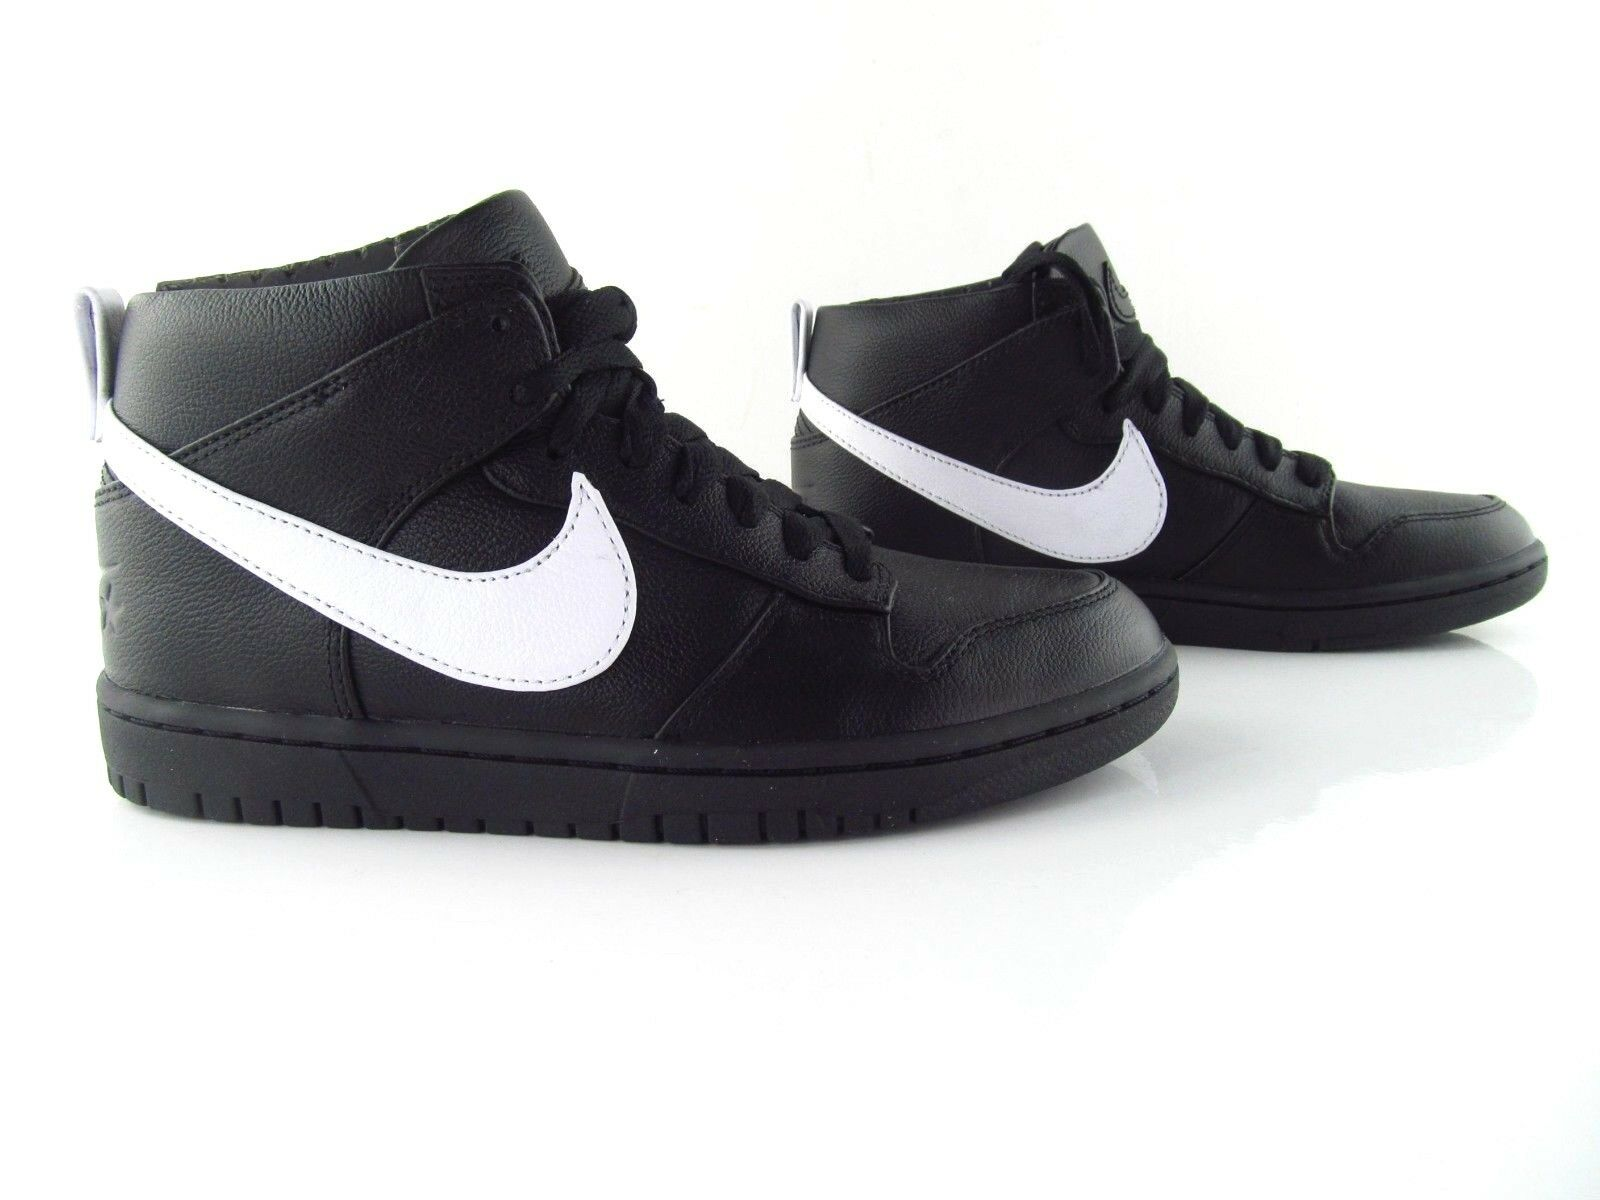 NIKE Dunk Dunk NIKE LUX Chukka/RT Riccardo Tisci nikelab LEATHER NEW uk_6 us_6.5 39 EUR 8b6a26